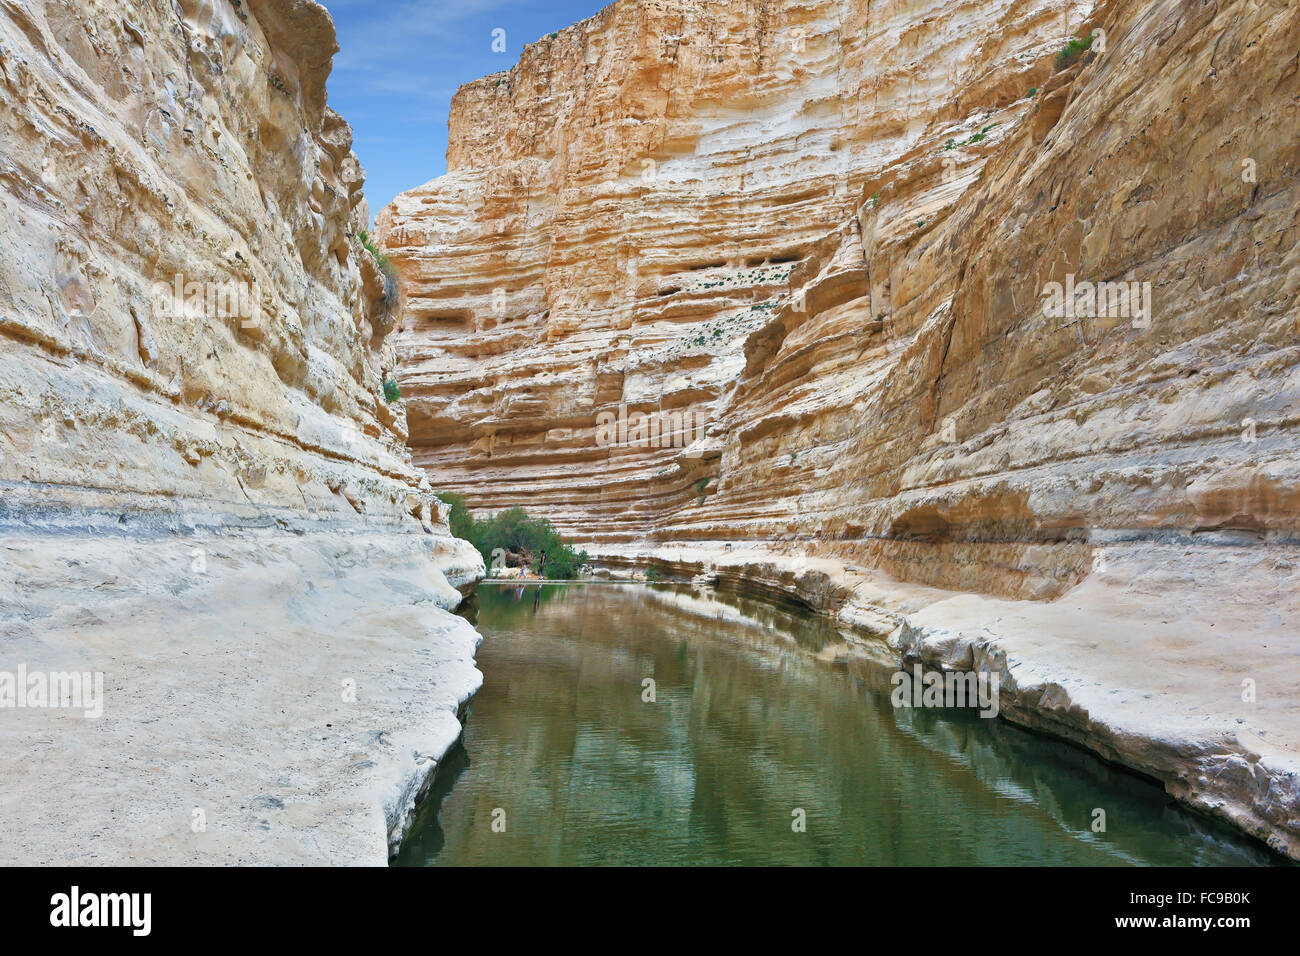 Ein Avdat Canyon, continue the journey Stock Photo